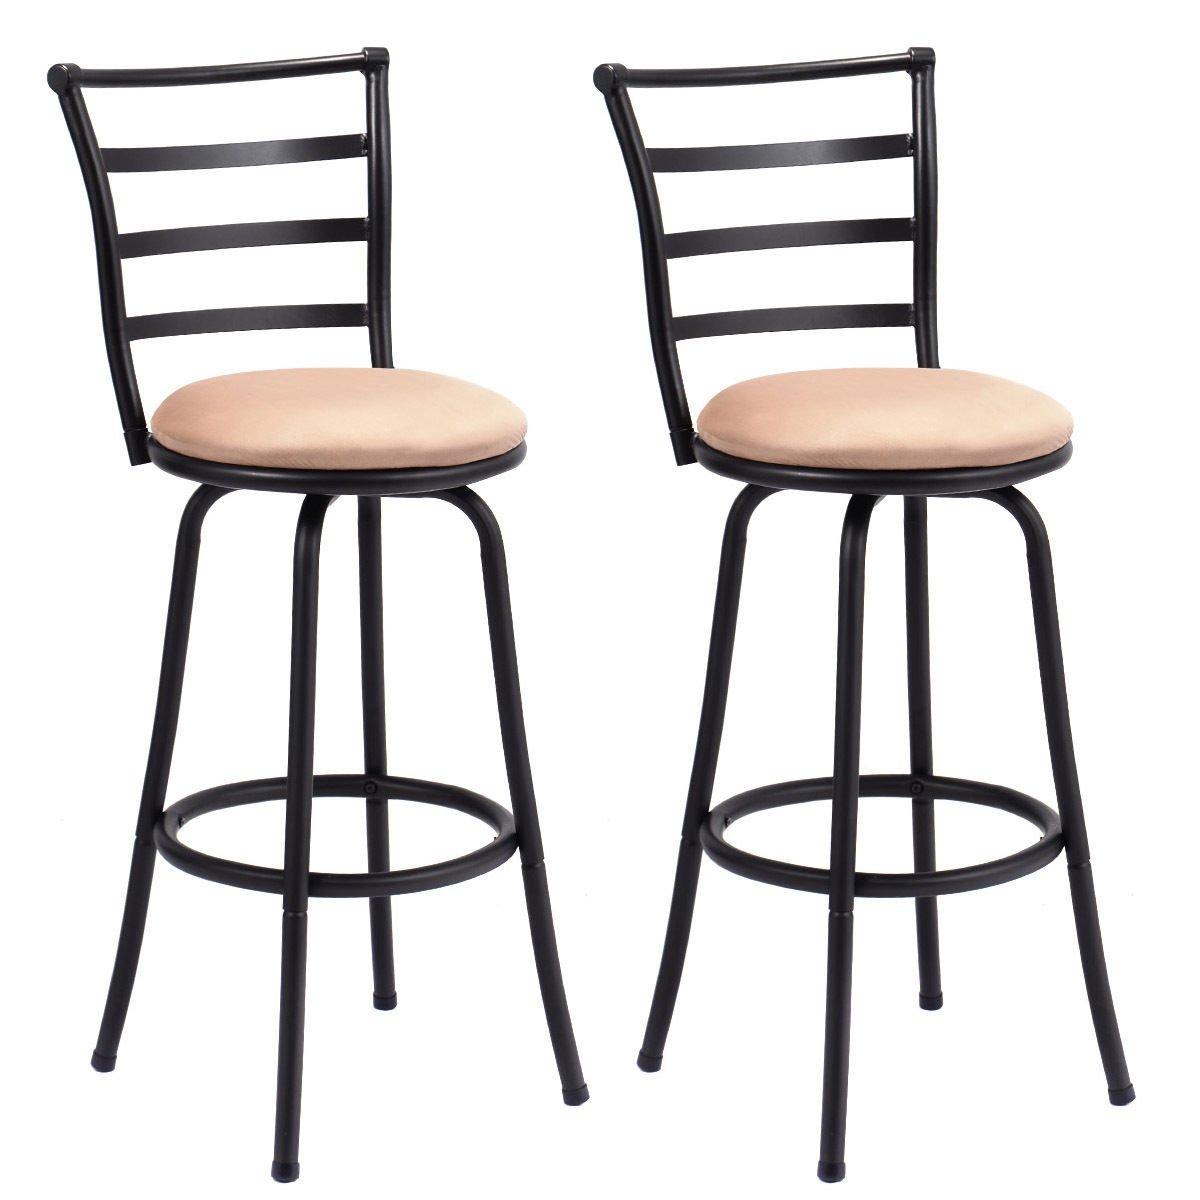 2 pcs of Bar Stools Swivel Counter Height Modern Barstool Pub Chairs Set Steel Frame